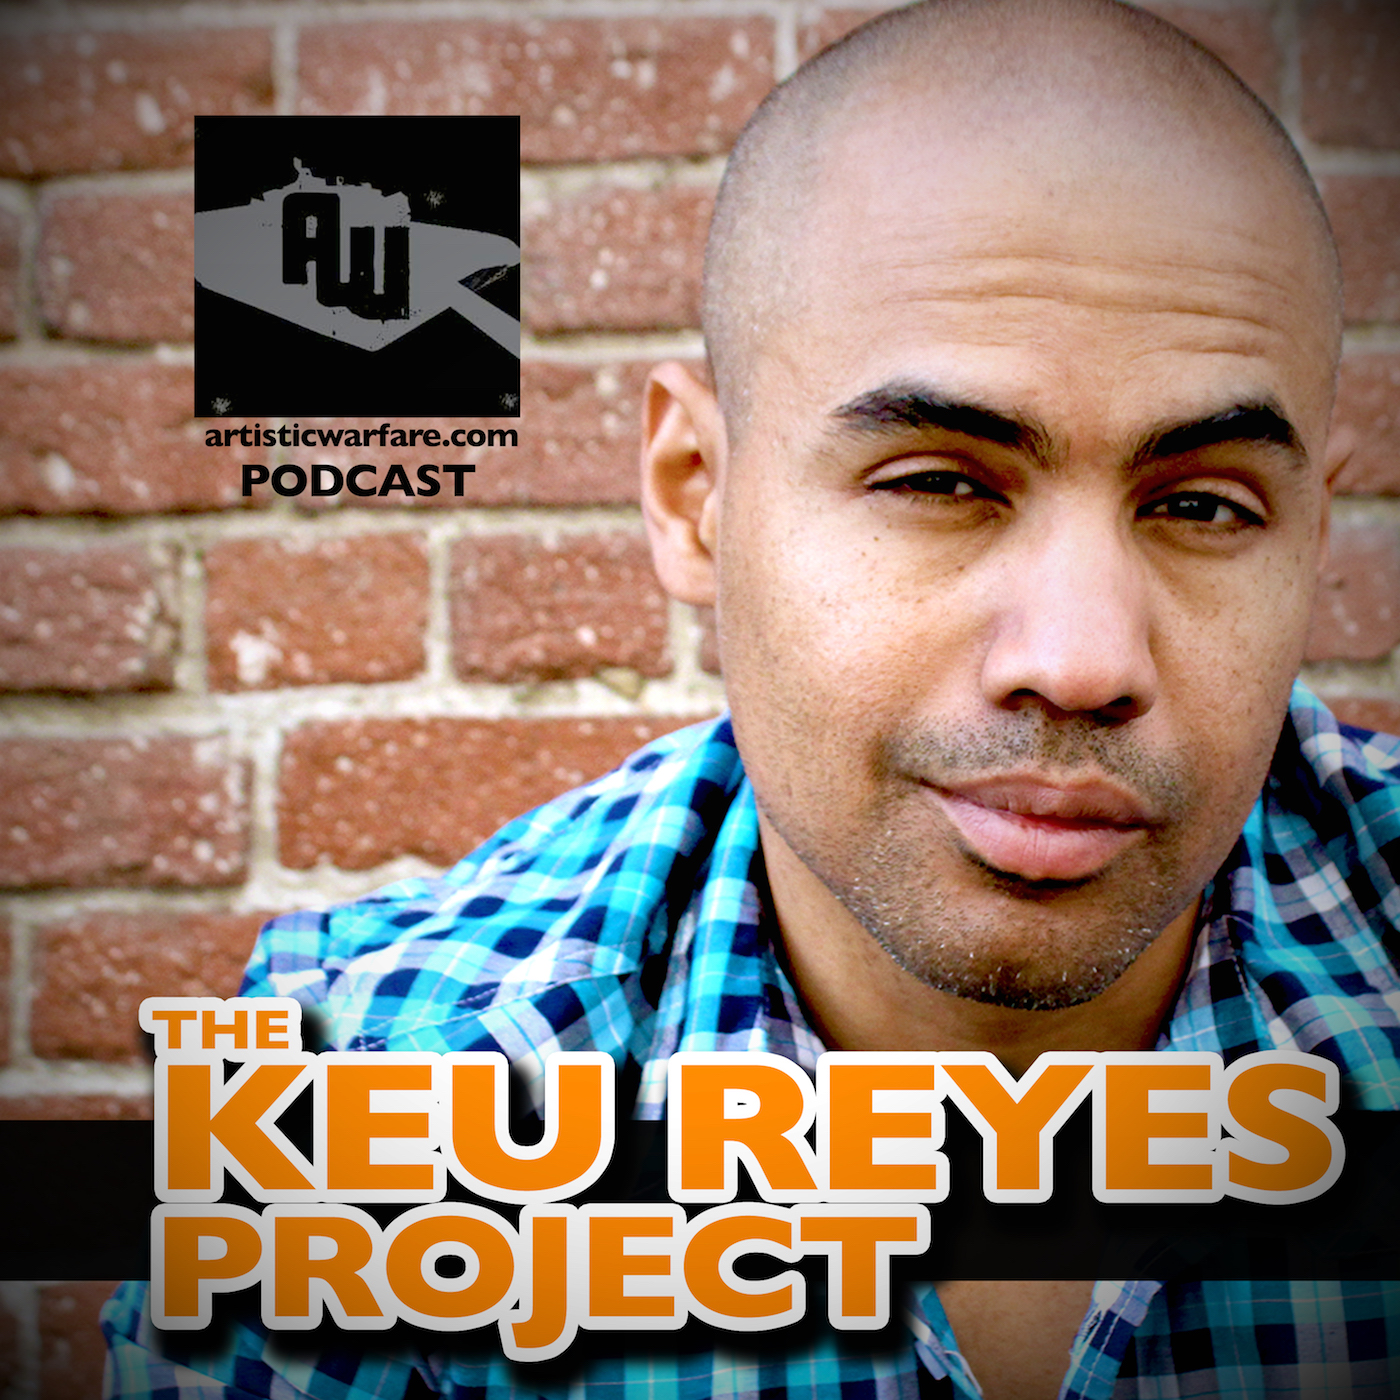 The Keu Reyes Project - Artistic Warfare - Educative Entertainment